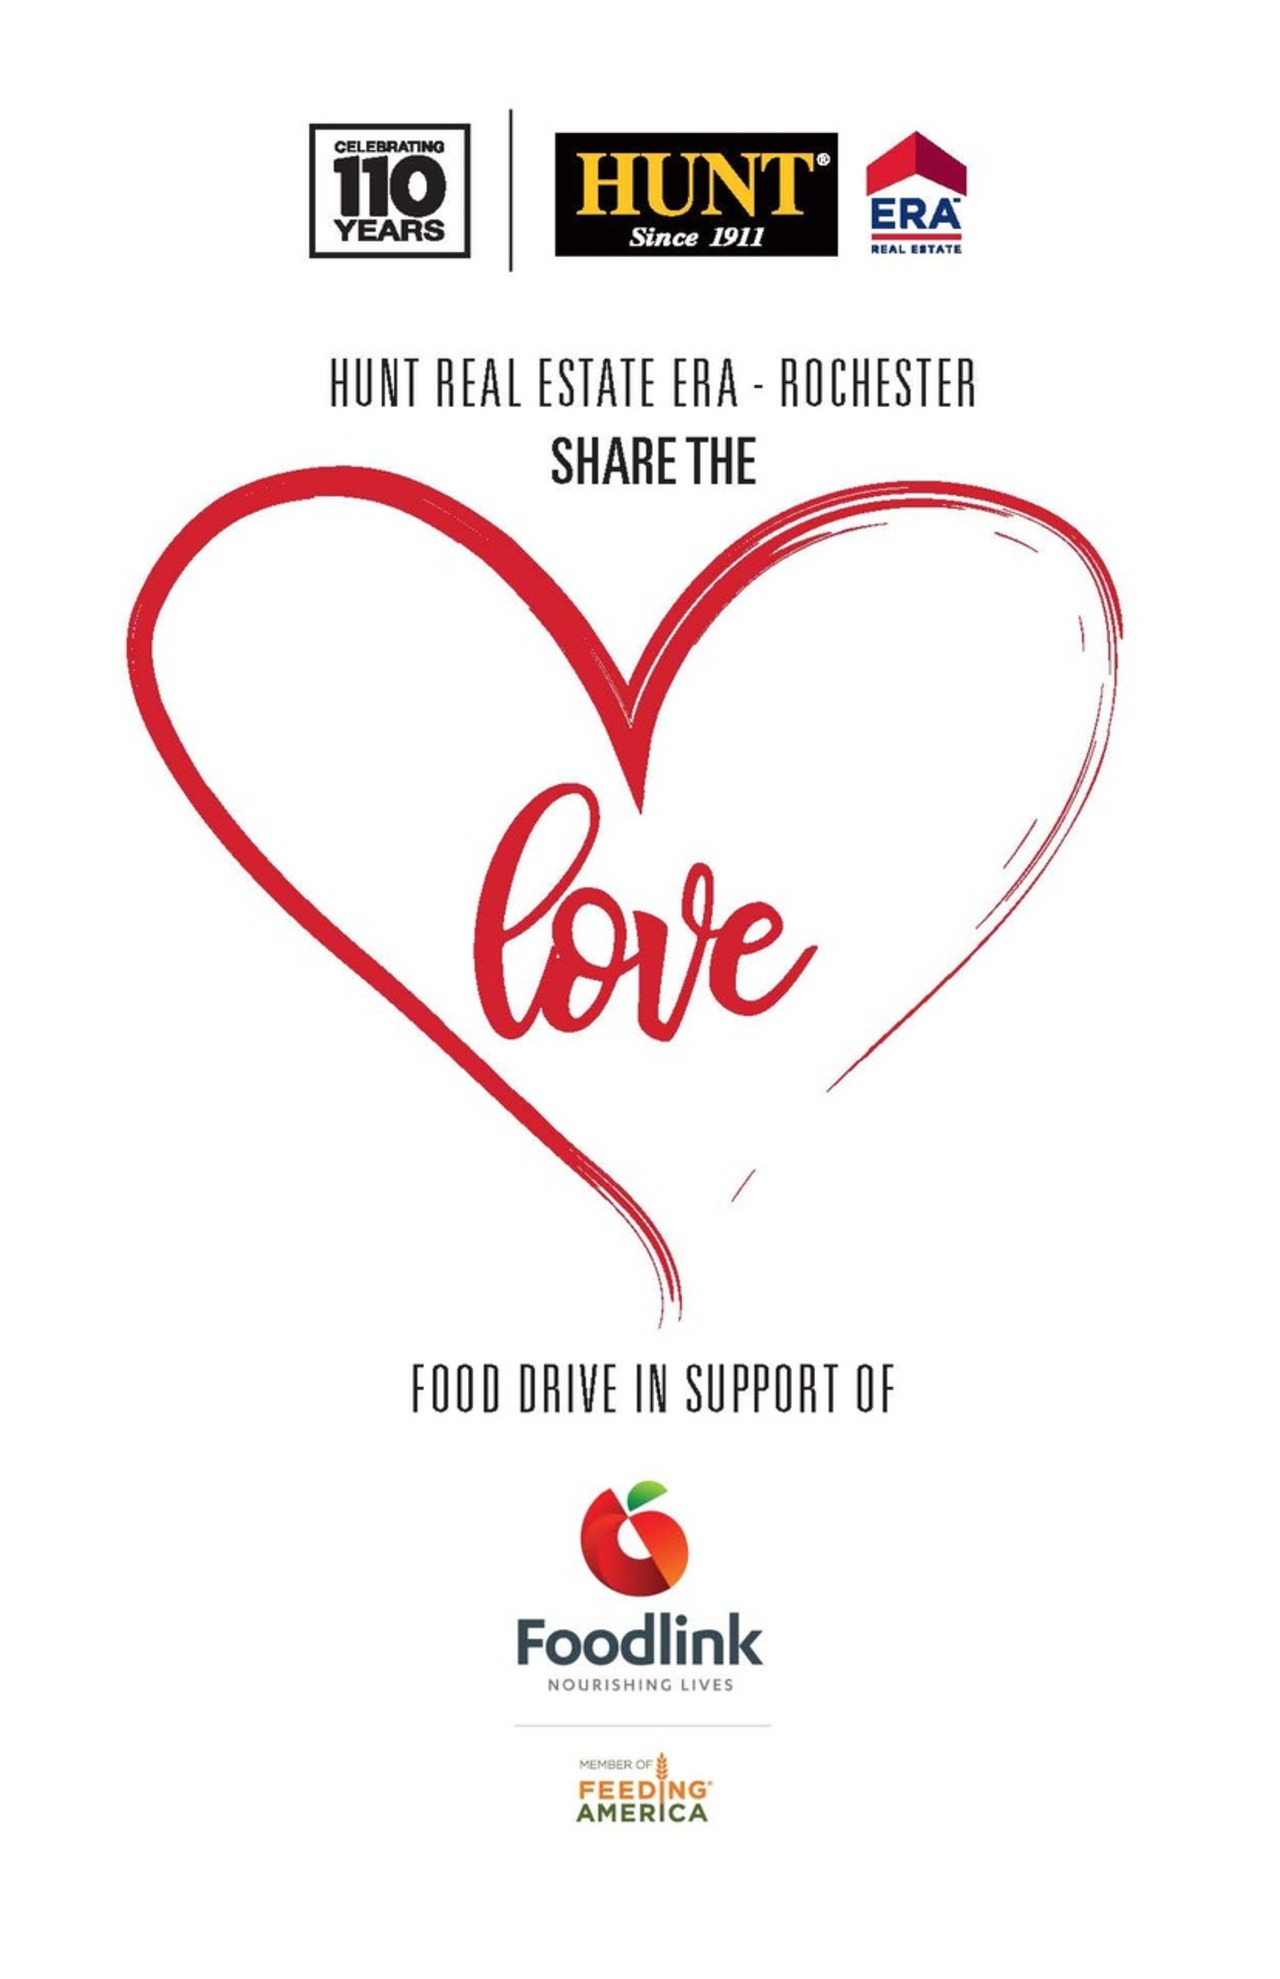 SHARE THE LOVE with Hunt Real Estate ERA - Rochester